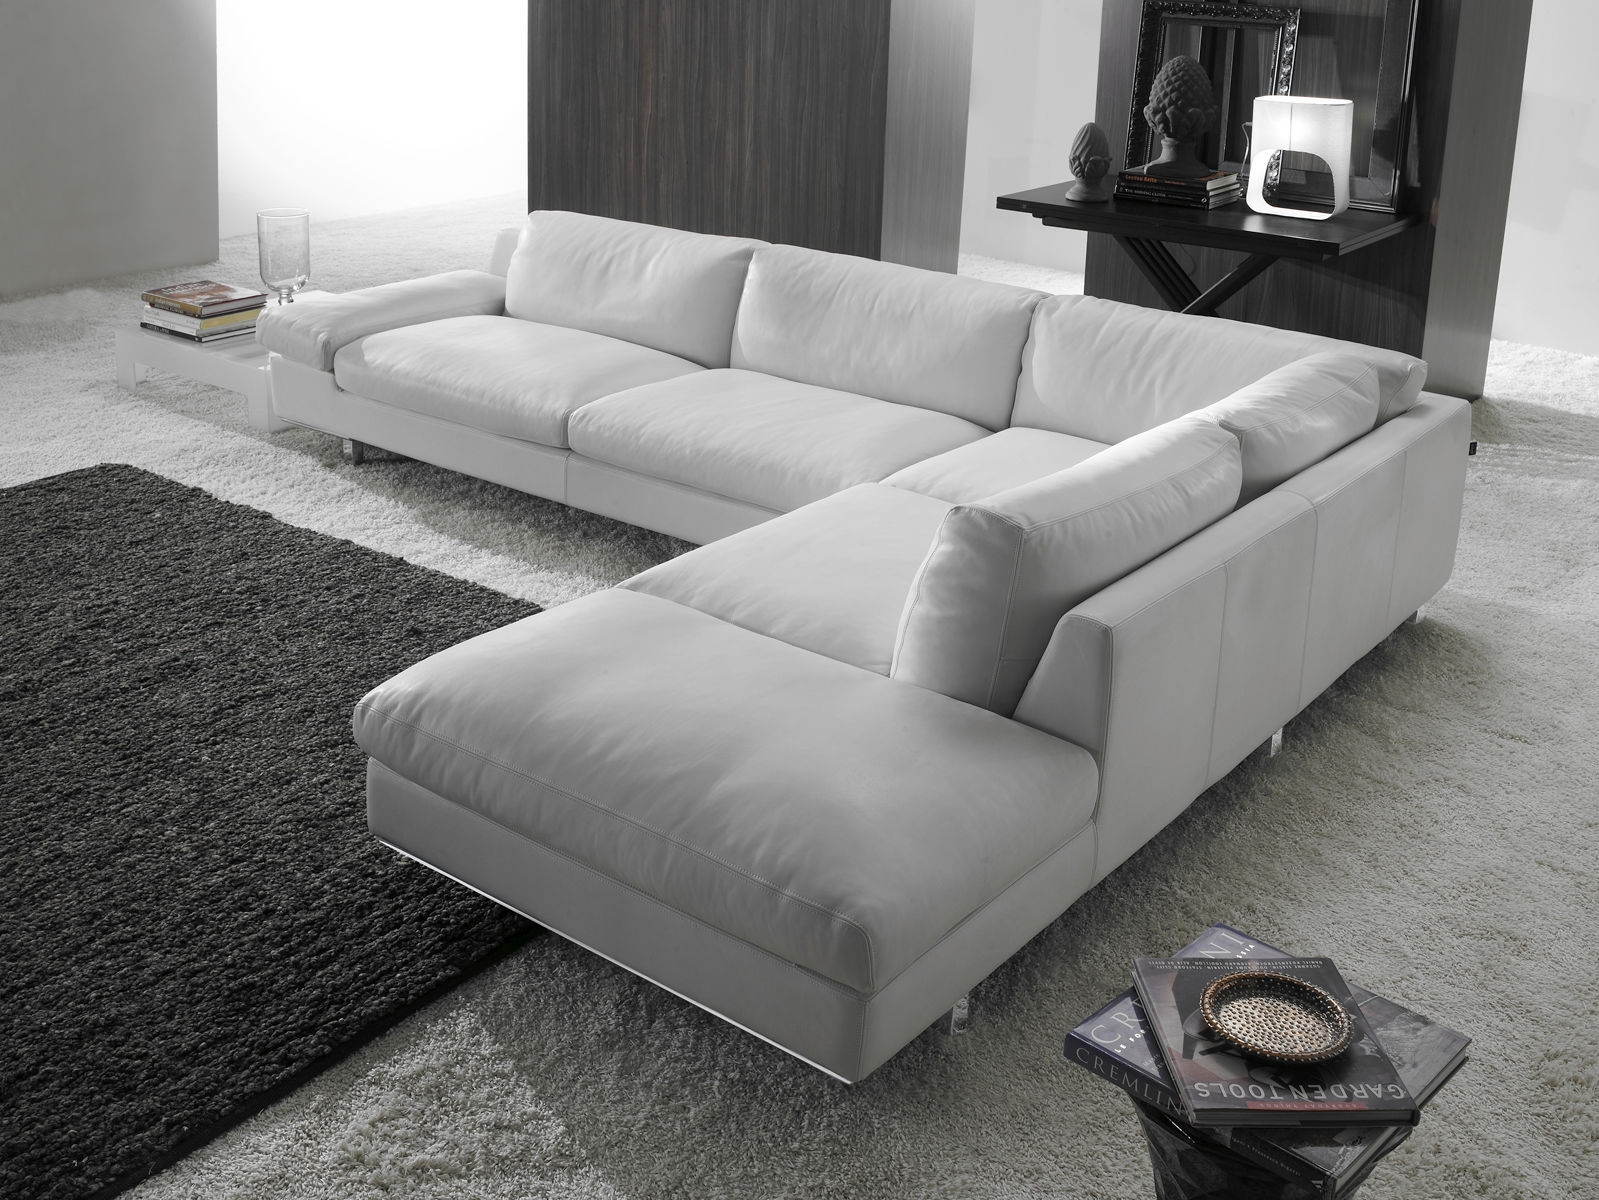 Corner Sofa Contemporary Leather 4 Seater Paran Intended For 4 Seater Sofas (Image 6 of 15)